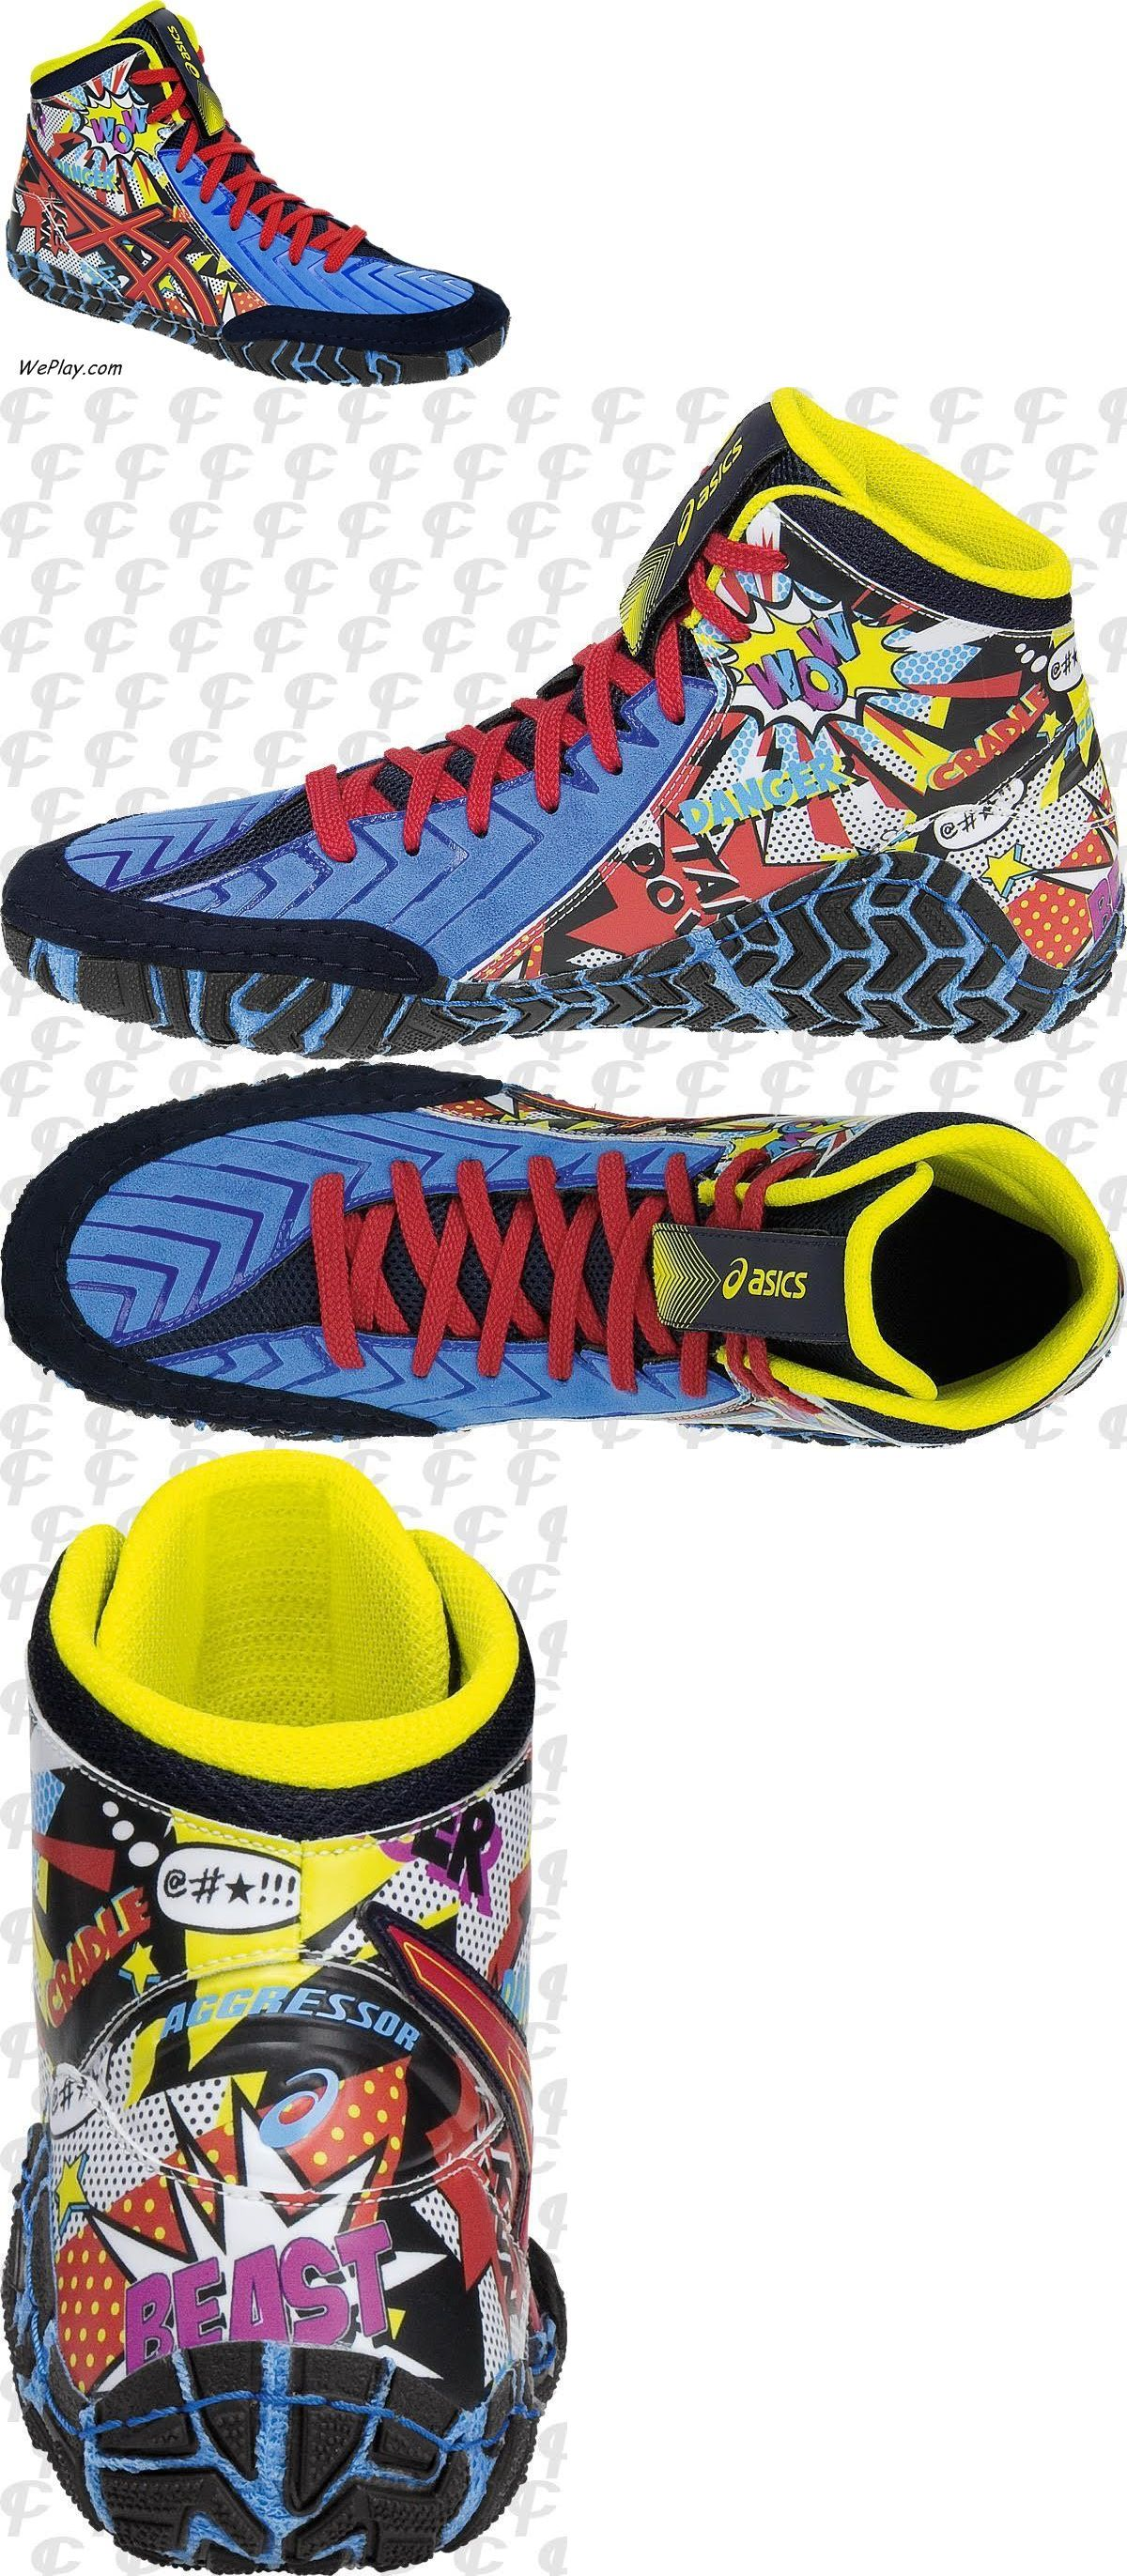 the best attitude 9efd2 2ebed Footwear 79799  New! Asics Aggressor 3 Limited Edition Le Comic Hero  Wrestling Shoes J603y-3823 BUY IT NOW ONLY   129.95